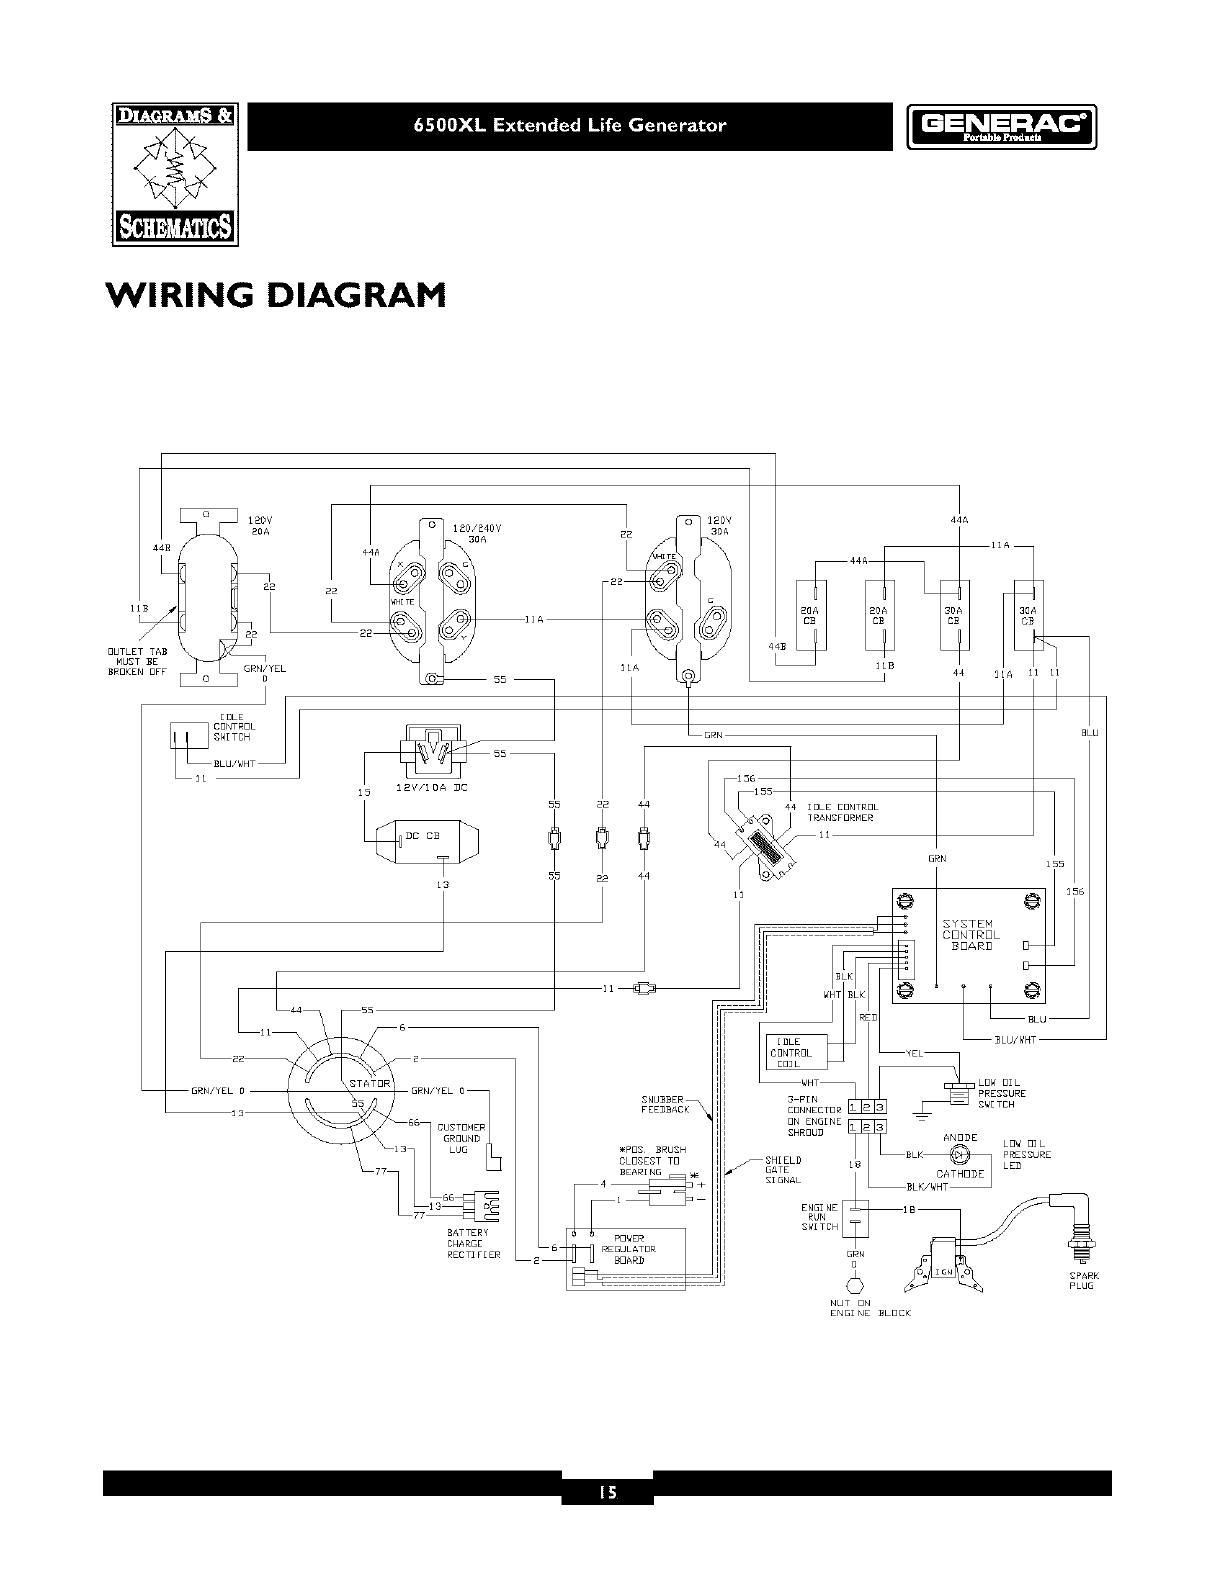 abacbfe4 09c9 46f3 b904 b7a0ca98baaa bgf page 15 of generac portable generator 6500xl user guide abac air compressor wiring diagram at fashall.co